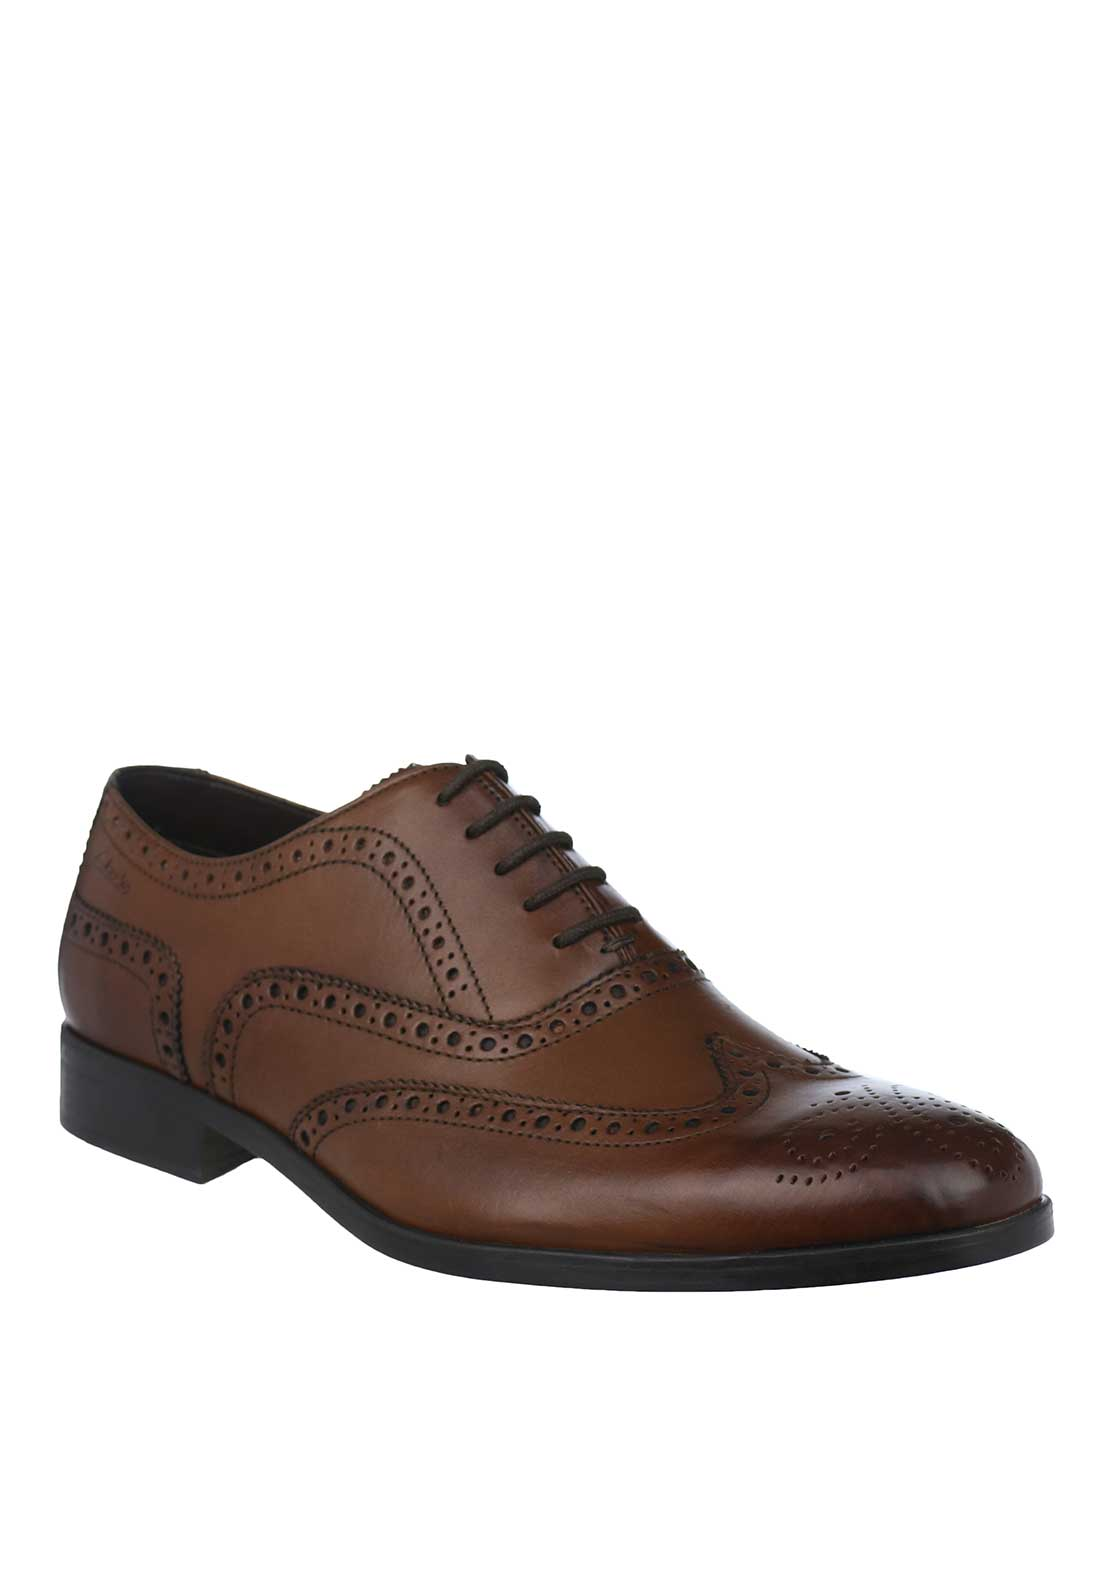 Clarks Mens Banfield Limit Lace Up Leather Brogue Shoe, Tan